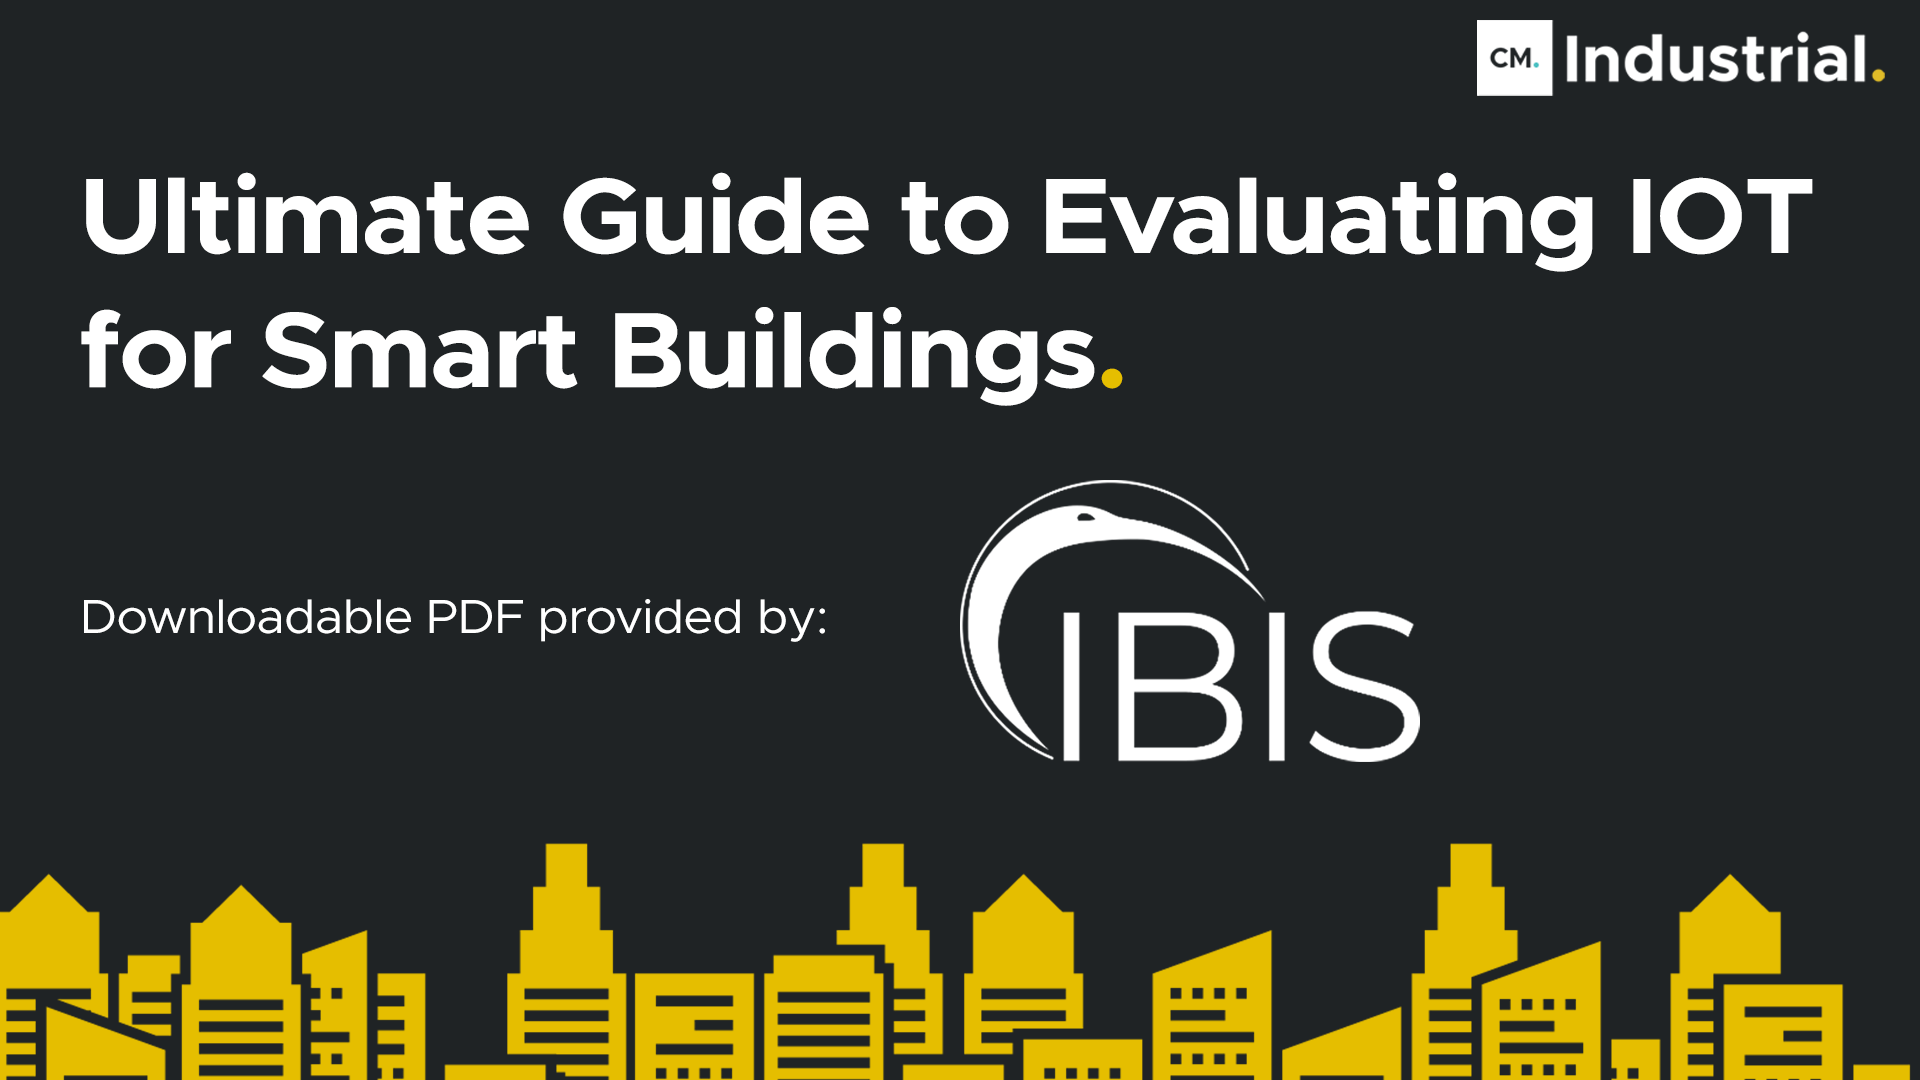 LinkedIn Imagery - Ultimate Guide to Evaluating IOT for Smart Buildings